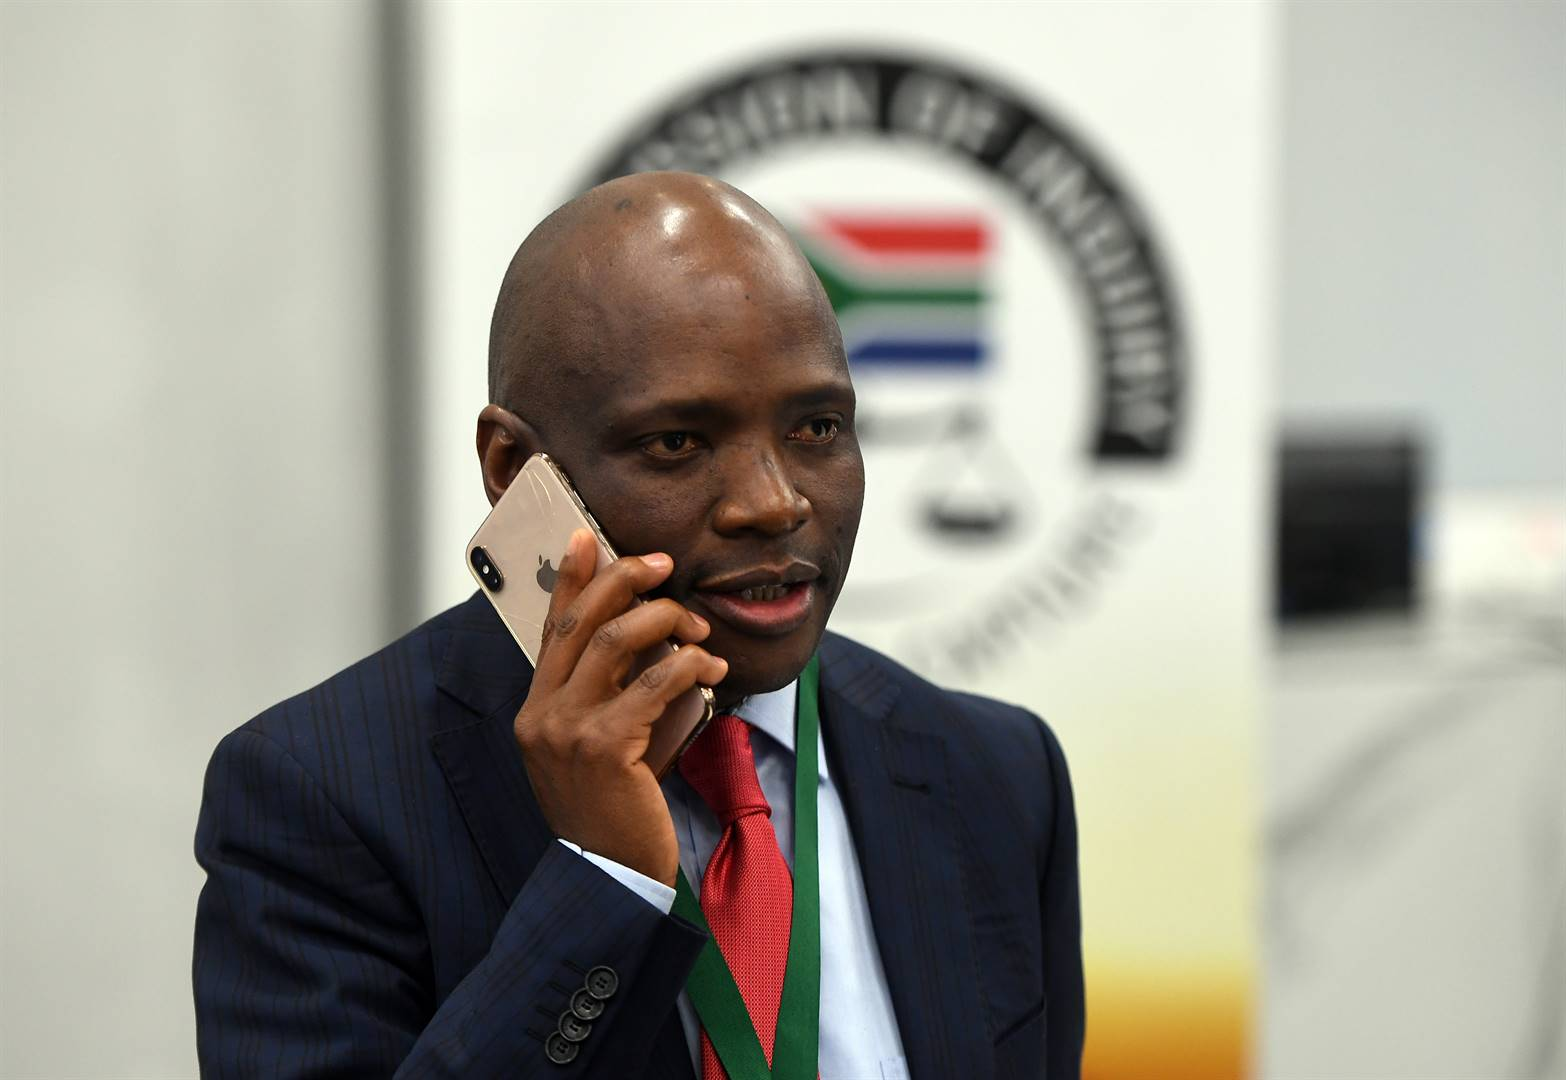 News24.com | Hlaudi Motsoeneng ordered to pay support larger than R850k of SABC money mature for personal factual prices